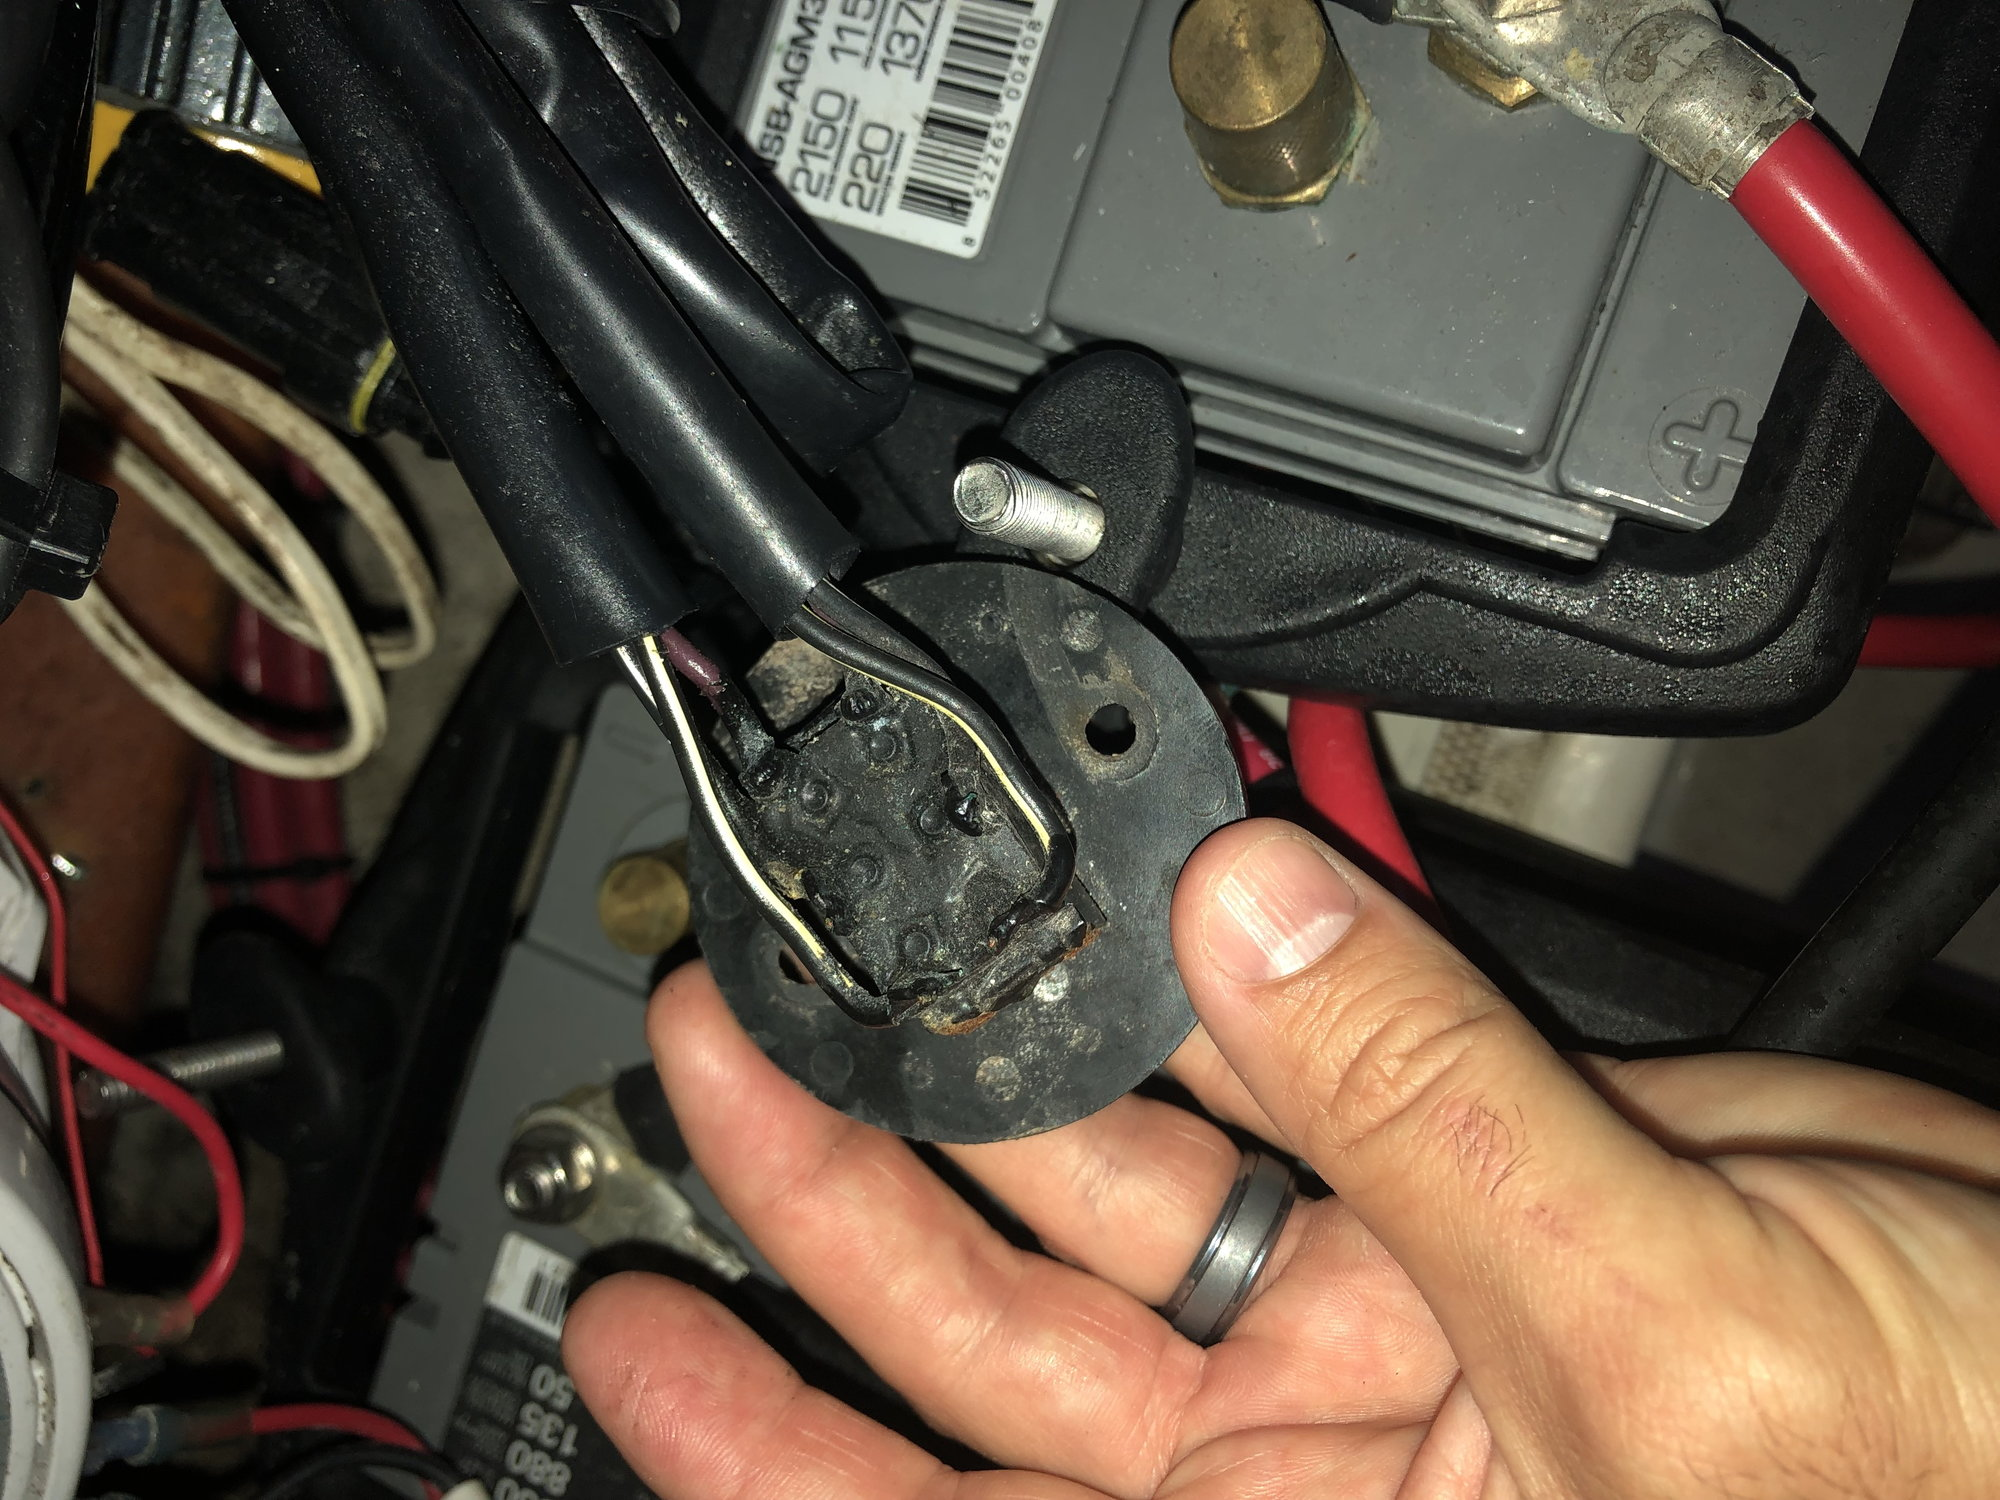 Mercury kill switch wiring question - The Hull Truth - Boating and Fishing  ForumThe Hull Truth